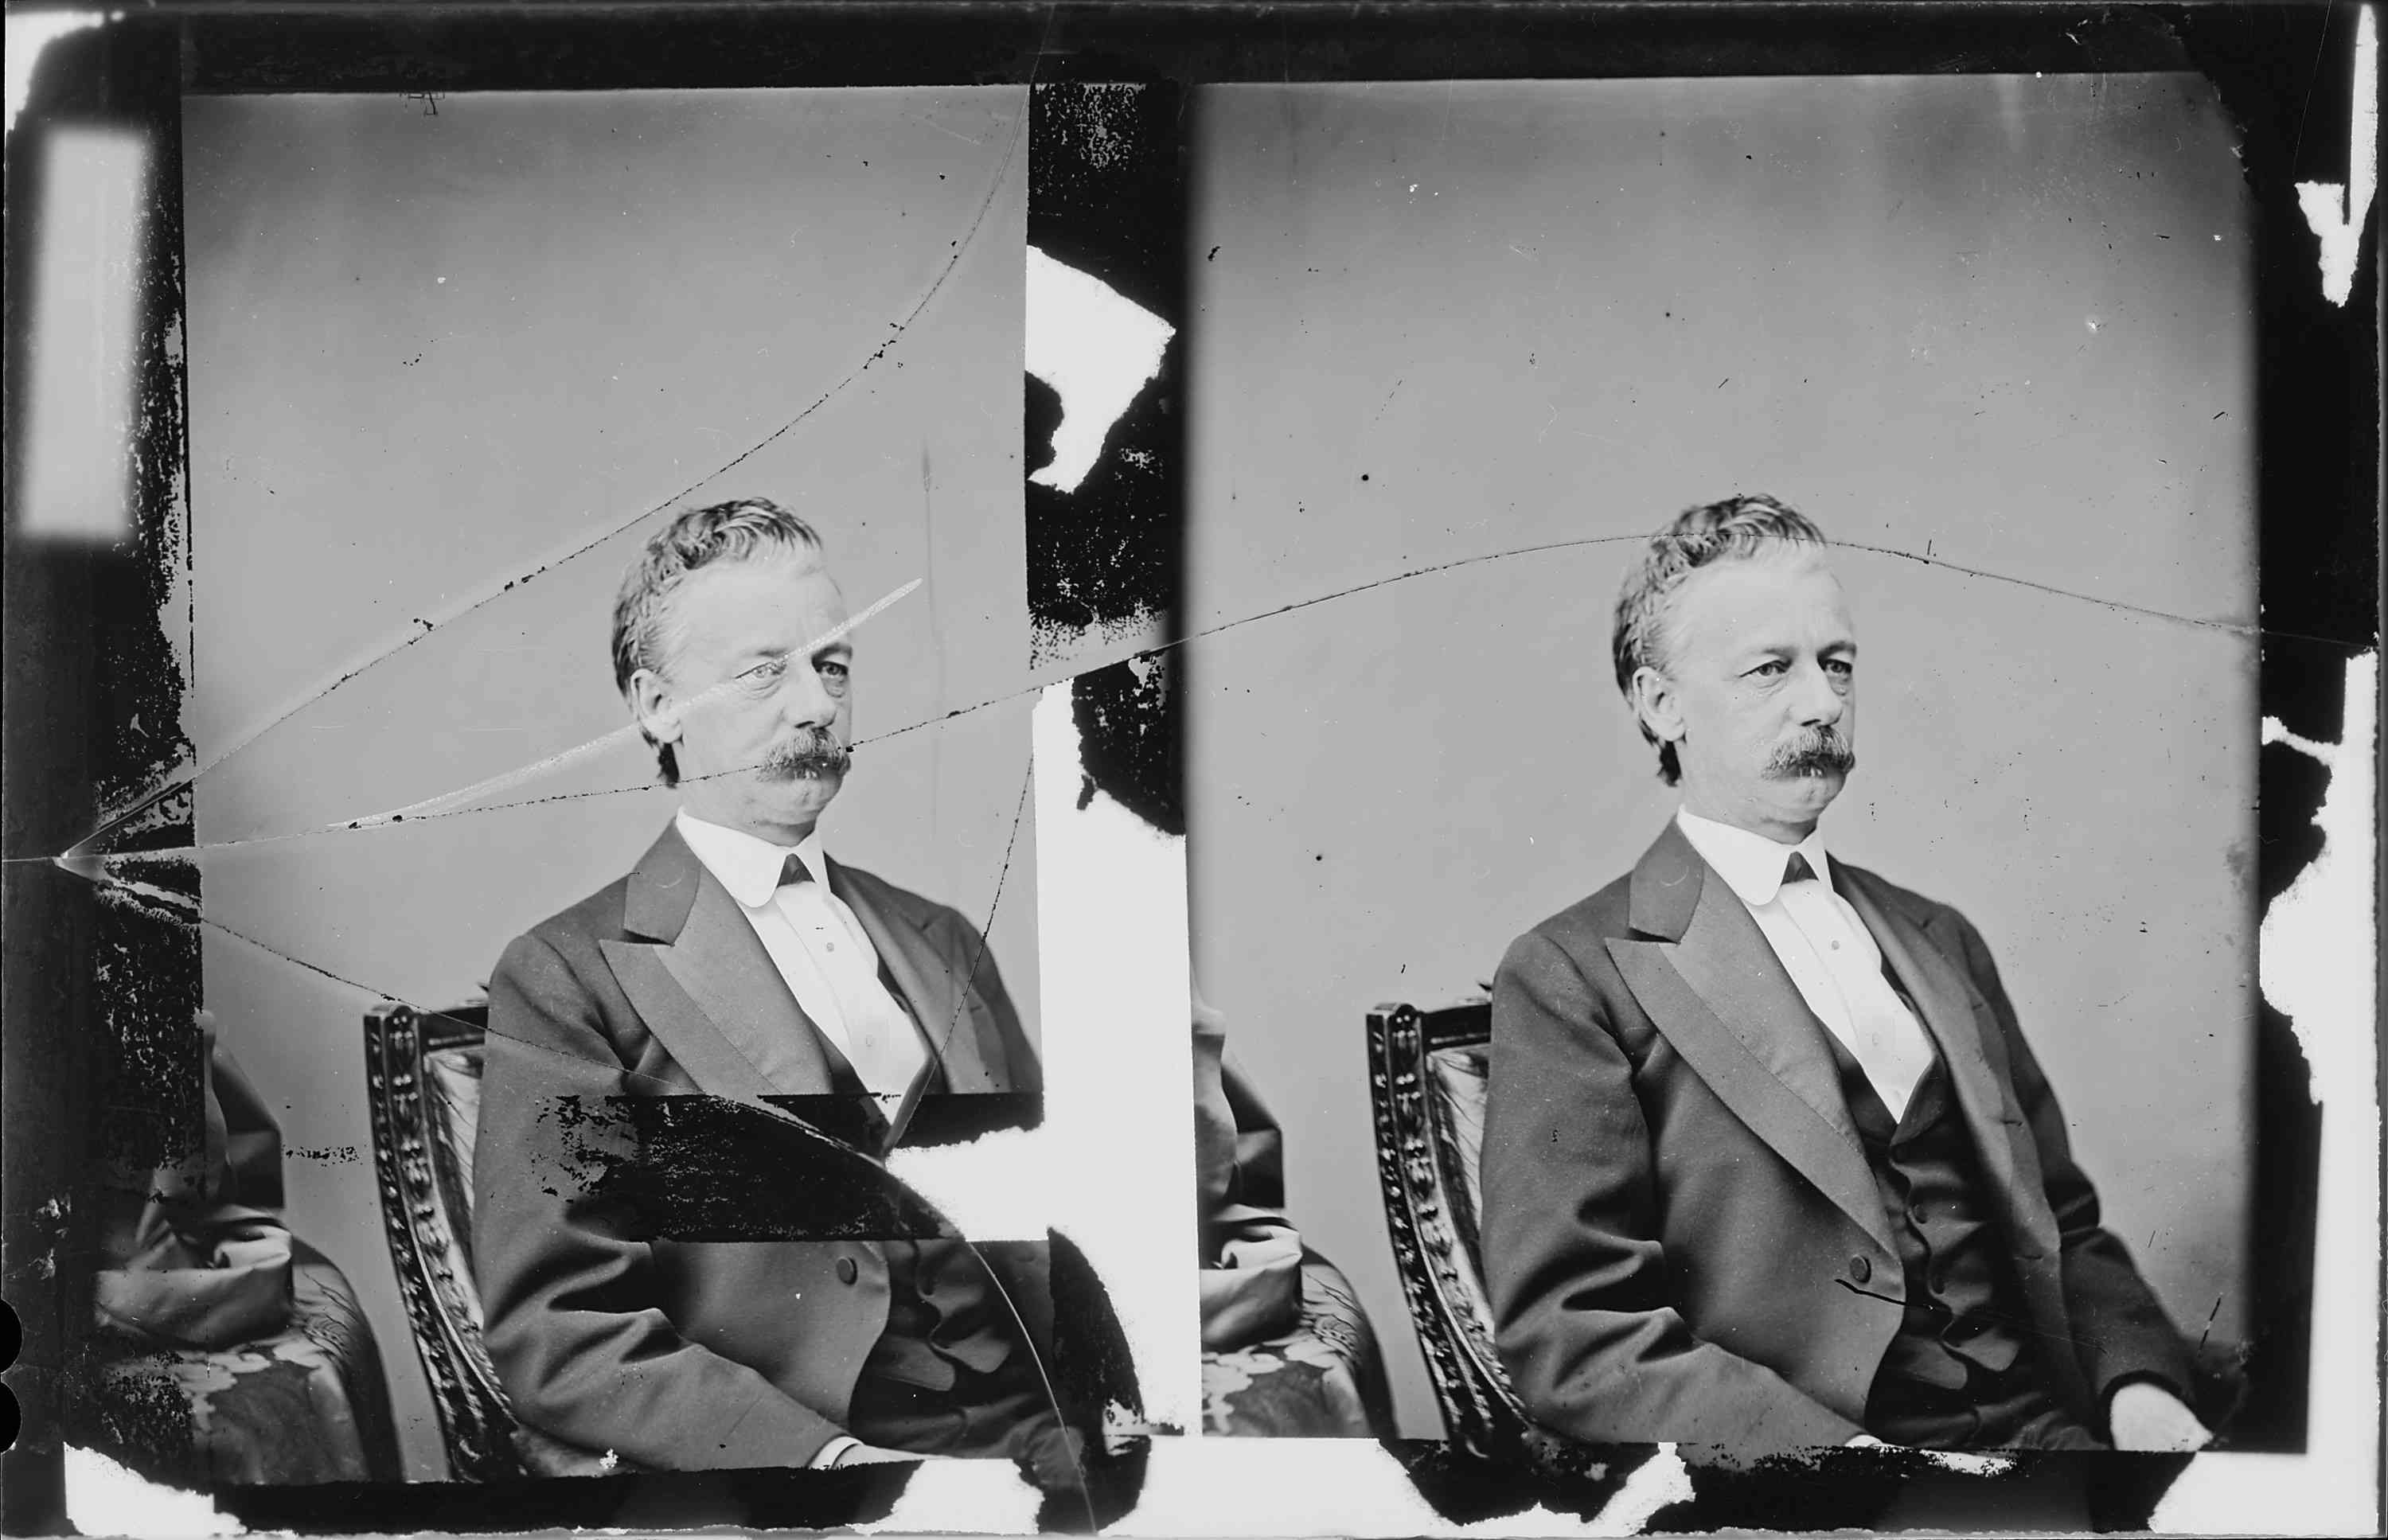 Two photos of General Henry Slocum